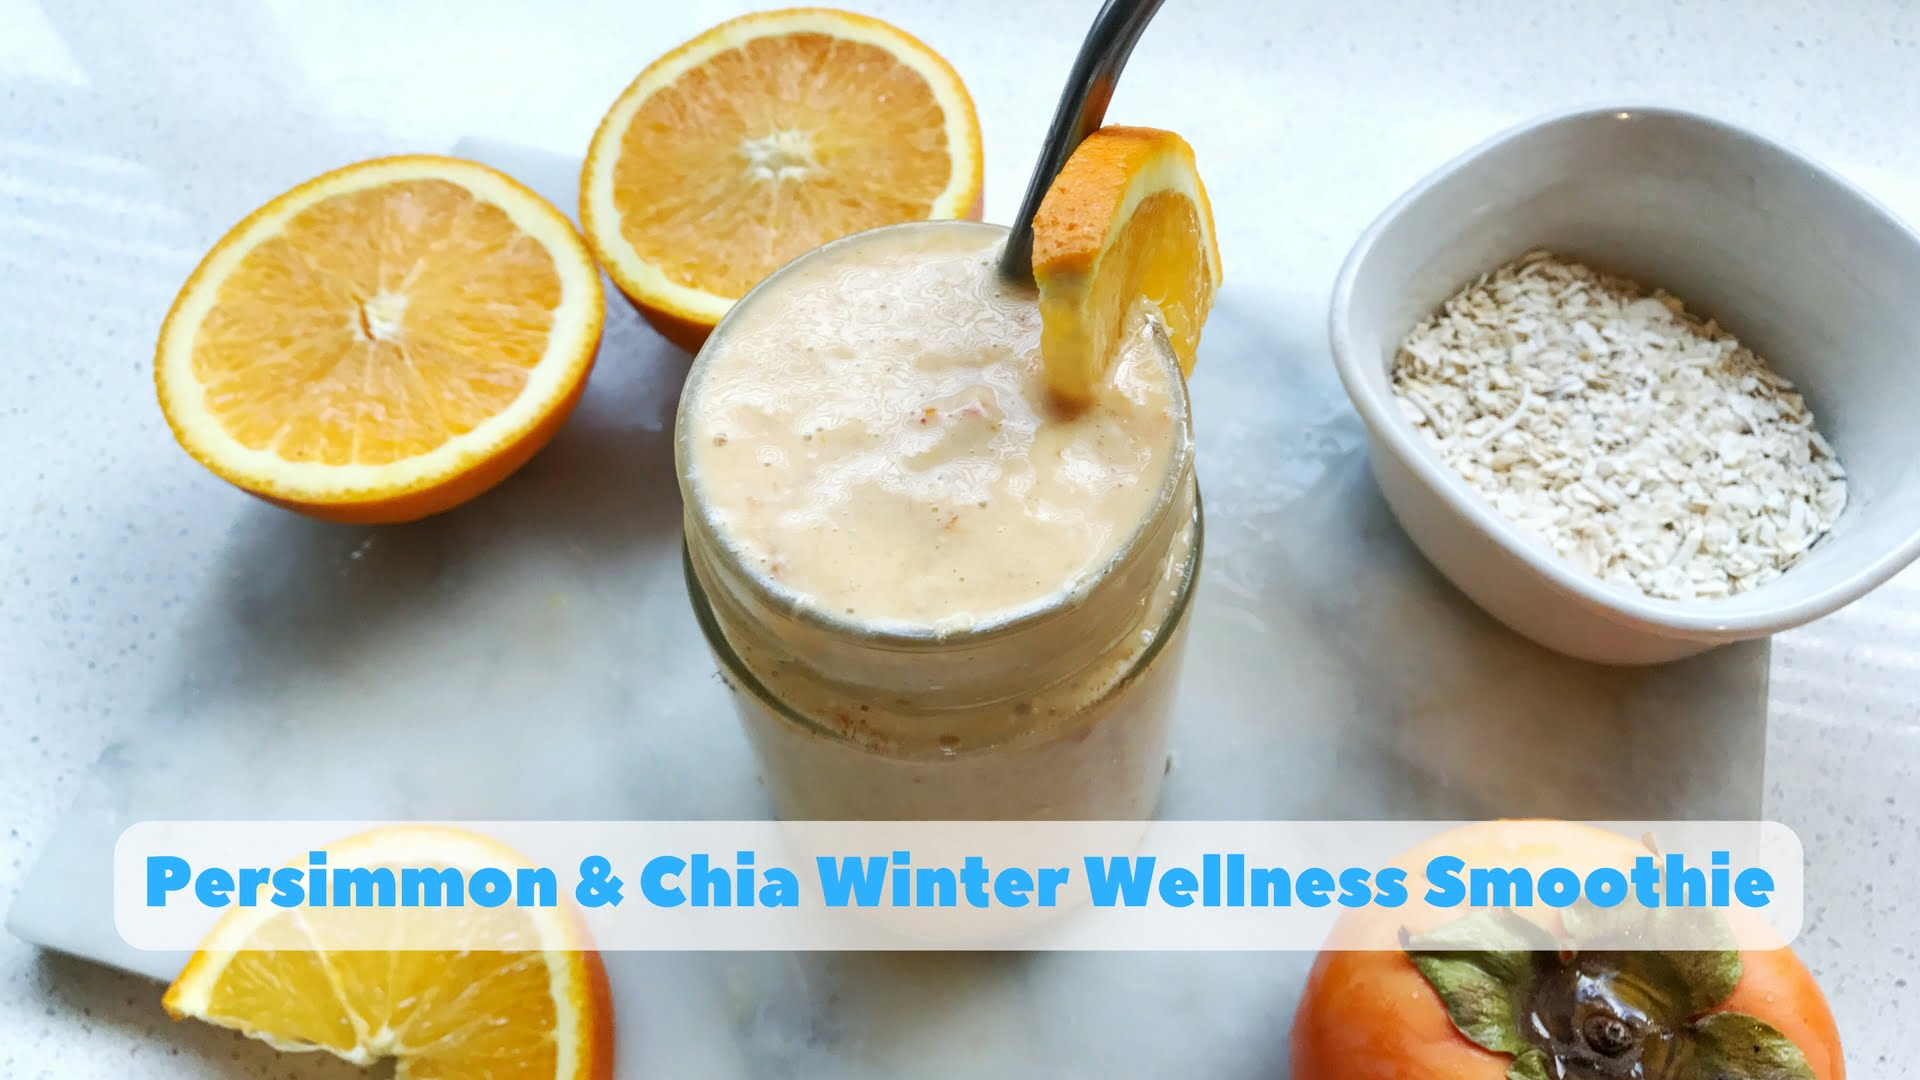 Persimmon & Chia Winter Wellness Smoothie